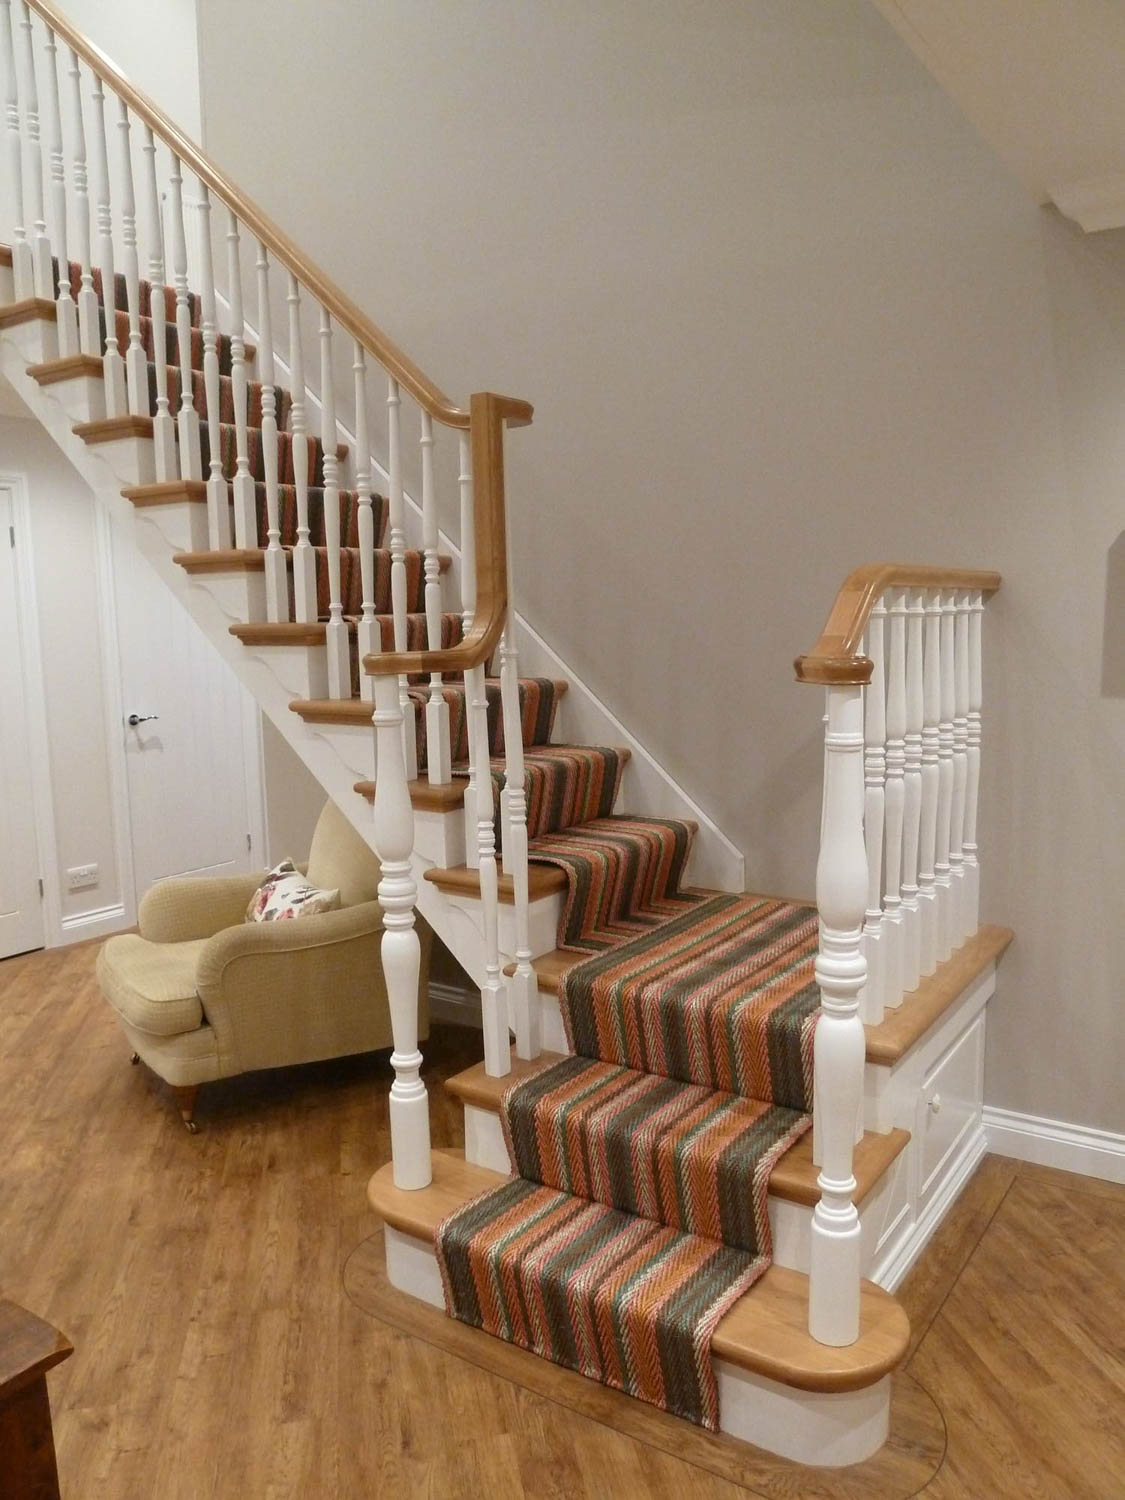 With Over 40 Years Of Experience In The Manufacture And Installation Of  Bespoke Staircases, Applewood Joinery Can Survey Your Home, Offering Expert  Advice ...